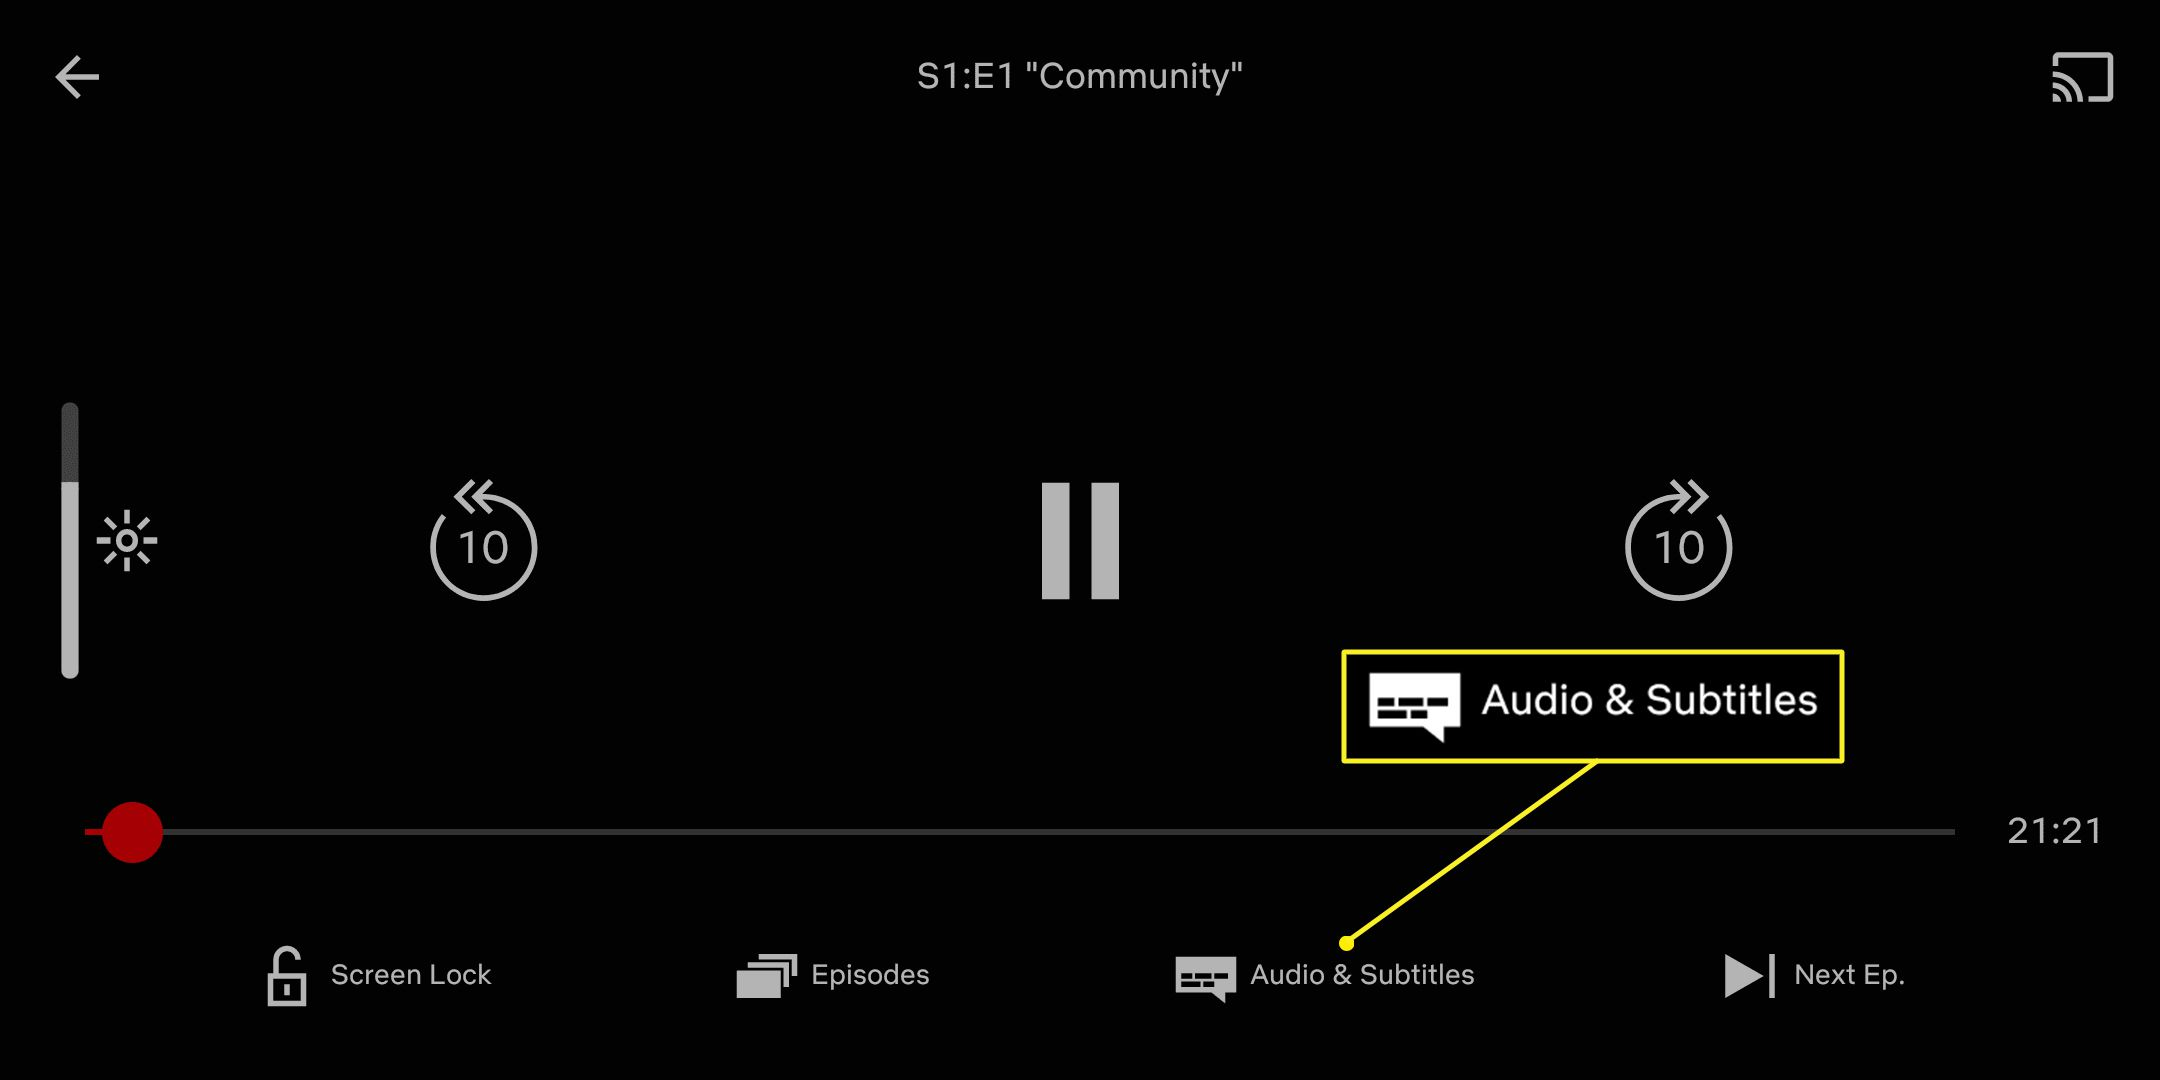 Netflix app with Audio & Subtitles highlighted